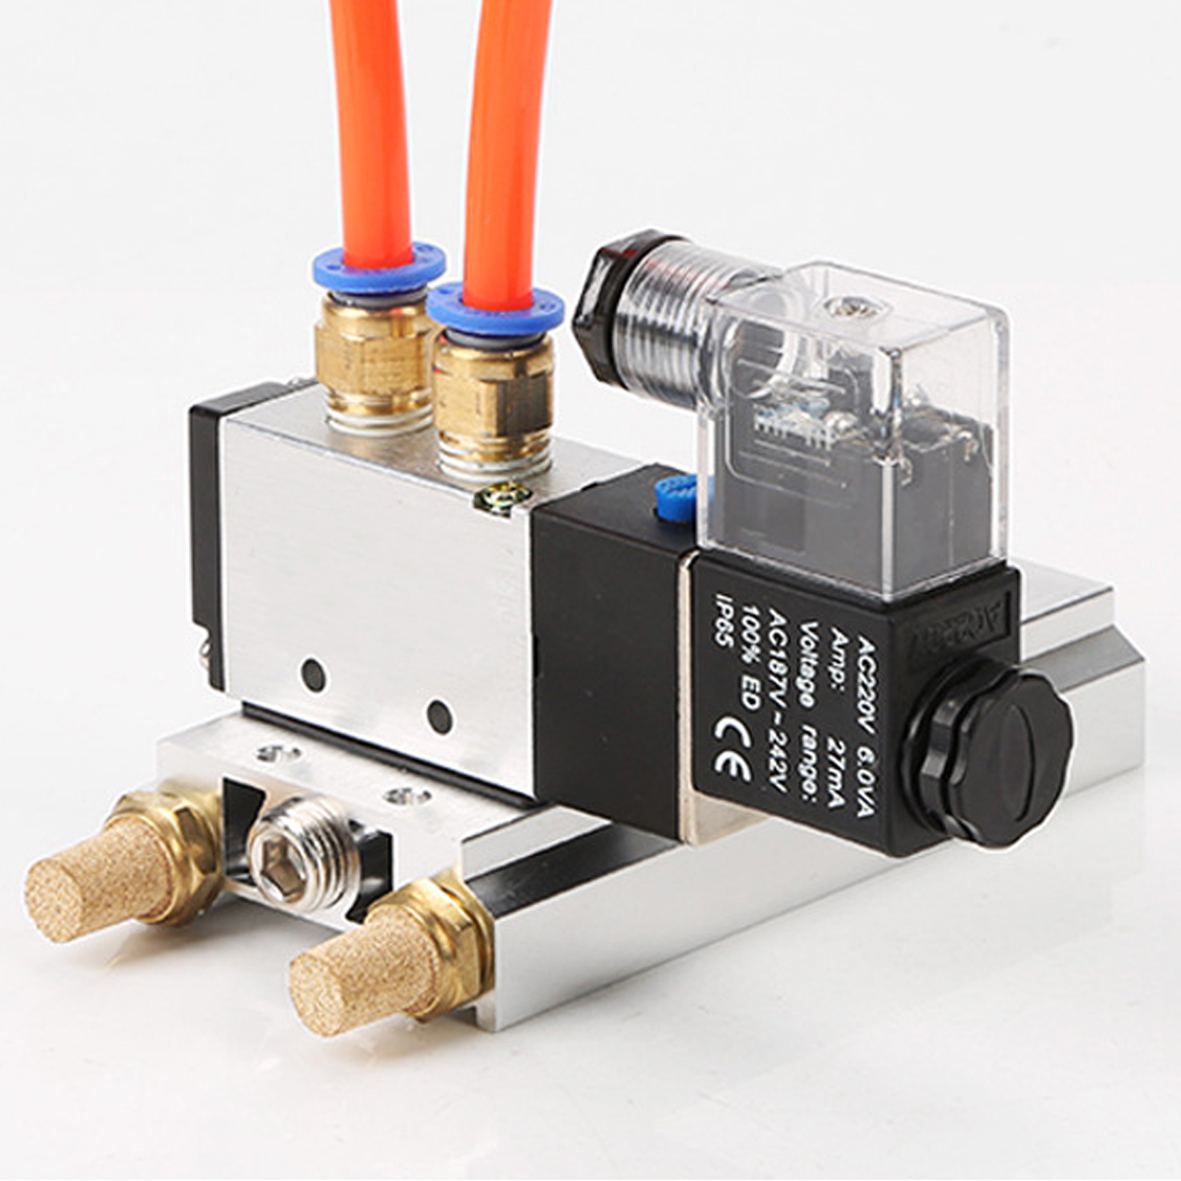 4V330-10 Pneumatic solenoid valves with confluence board